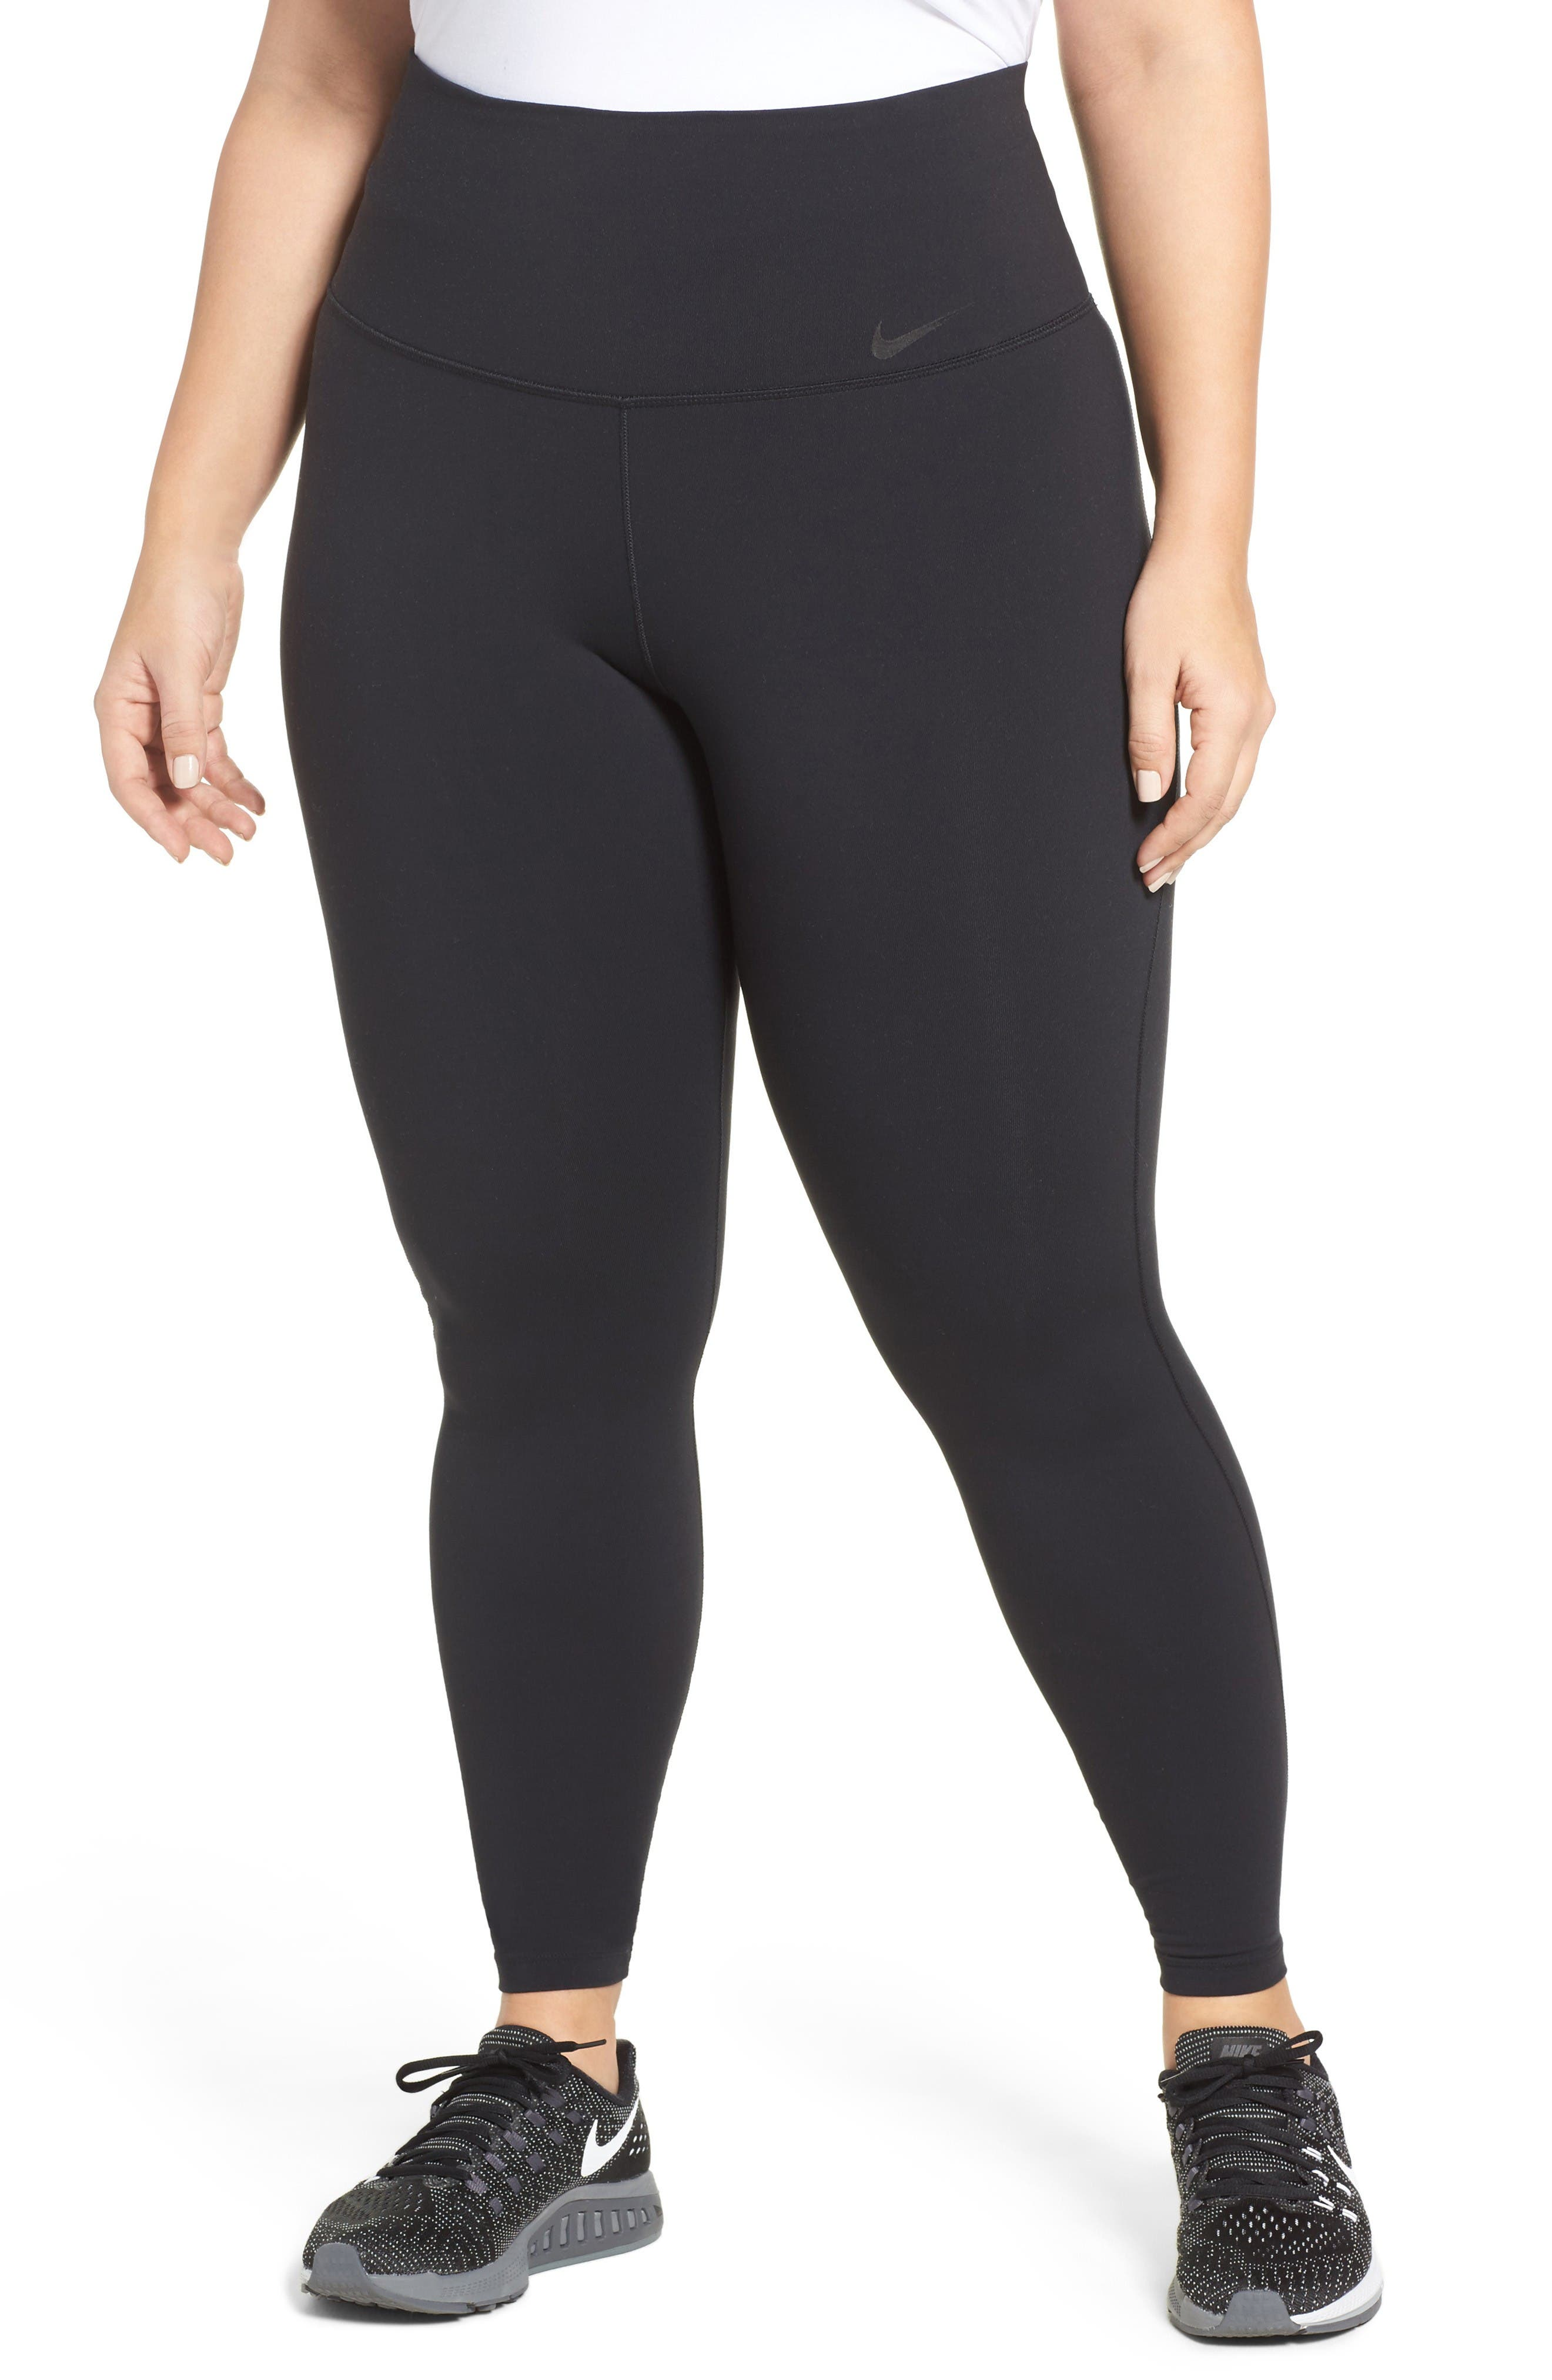 Main Image - Nike Power Legendary High Waist Tights (Plus Size)